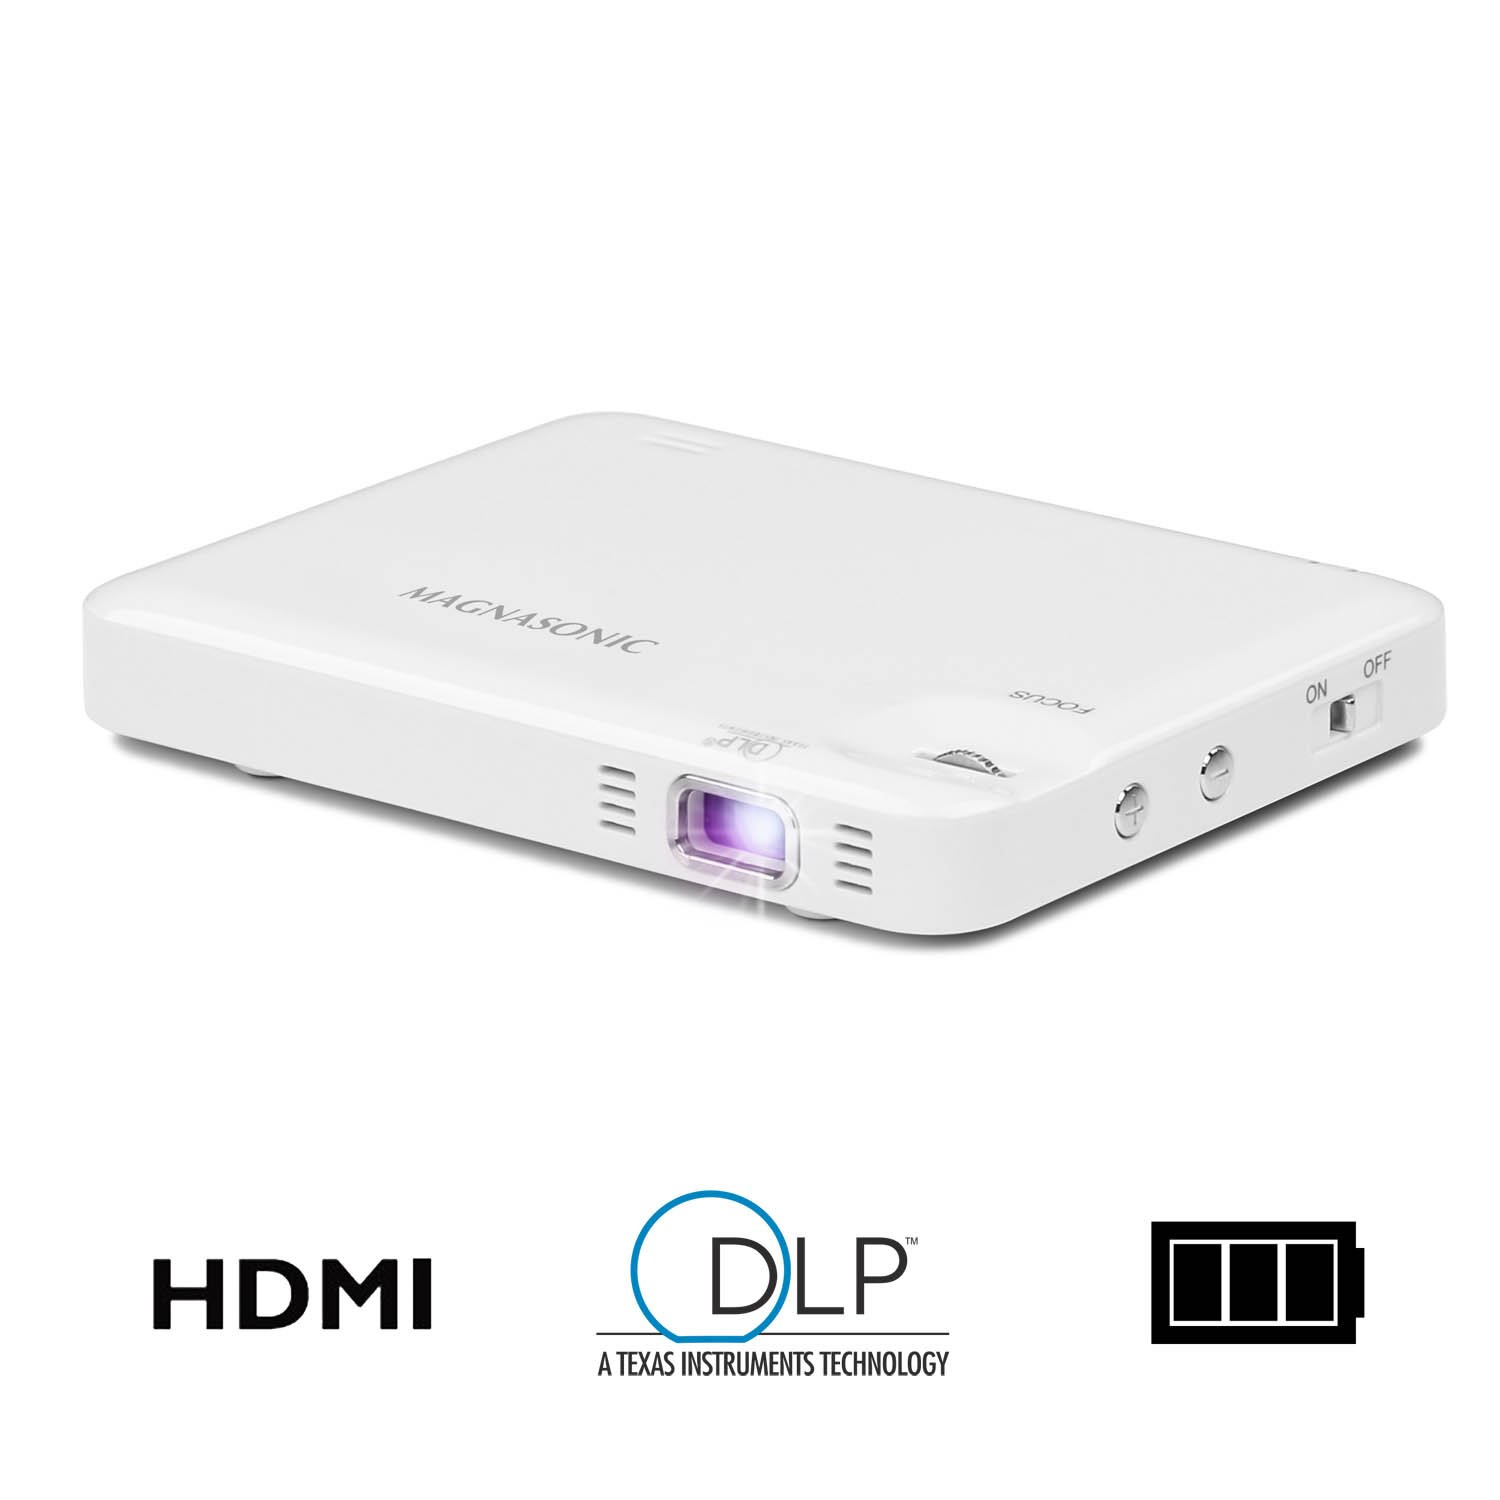 "Magnasonic Mini Portable Pocket Video Projector, HDMI, Rechargeable Battery, Built-in Speaker, DLP LED, 60"" Hi-Res Display for Streaming Movies, Presentations, Smartphones, Tablets, Laptops (PP60W) by Magnasonic"